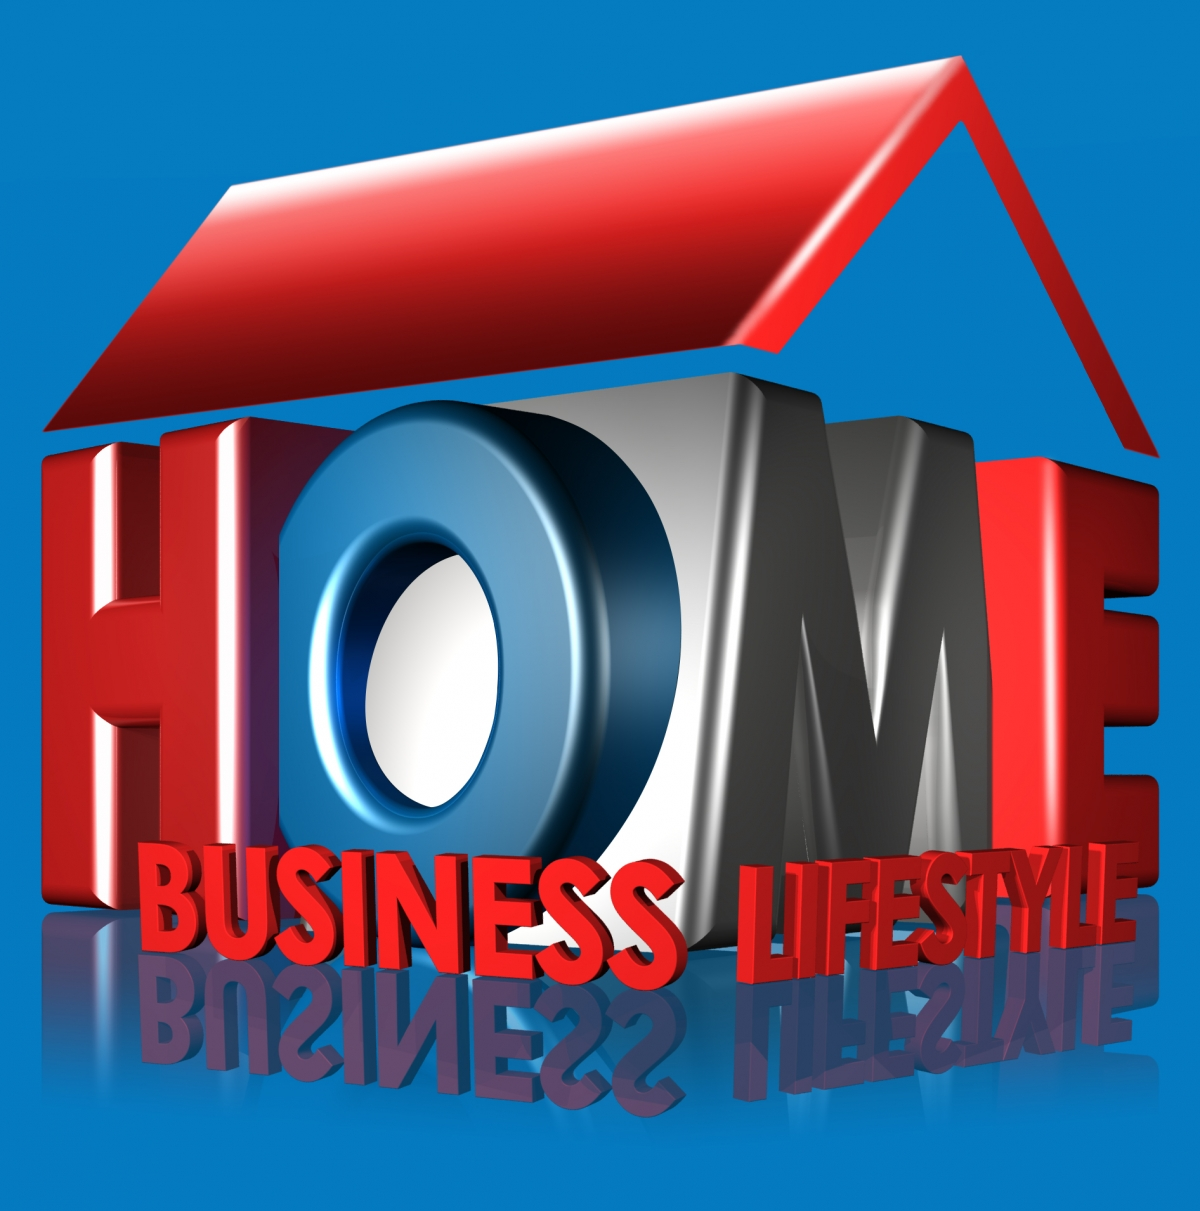 Home Business Lifestyle - It Changed My Life And It Can Change Your Life!